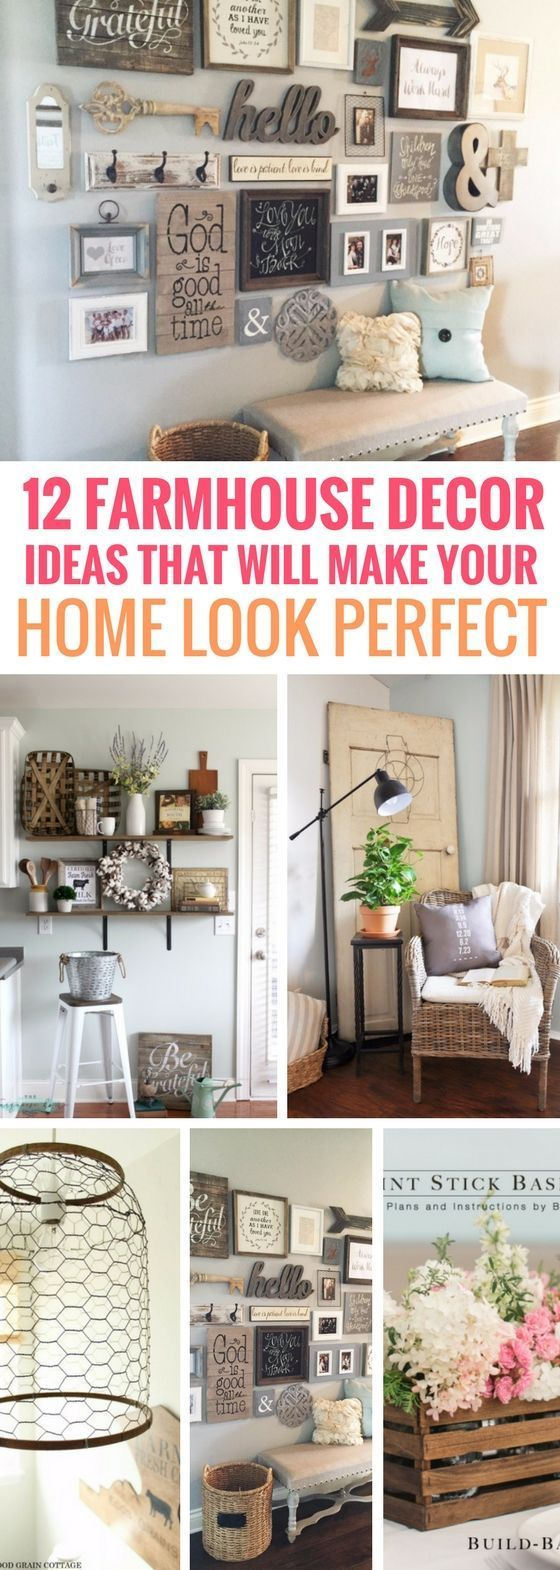 Wow, these farmhouse decor ideas are brilliant! I just love how these diy projects are so easy to do and they look stunning. I can't wait to try these decor projects in my home.